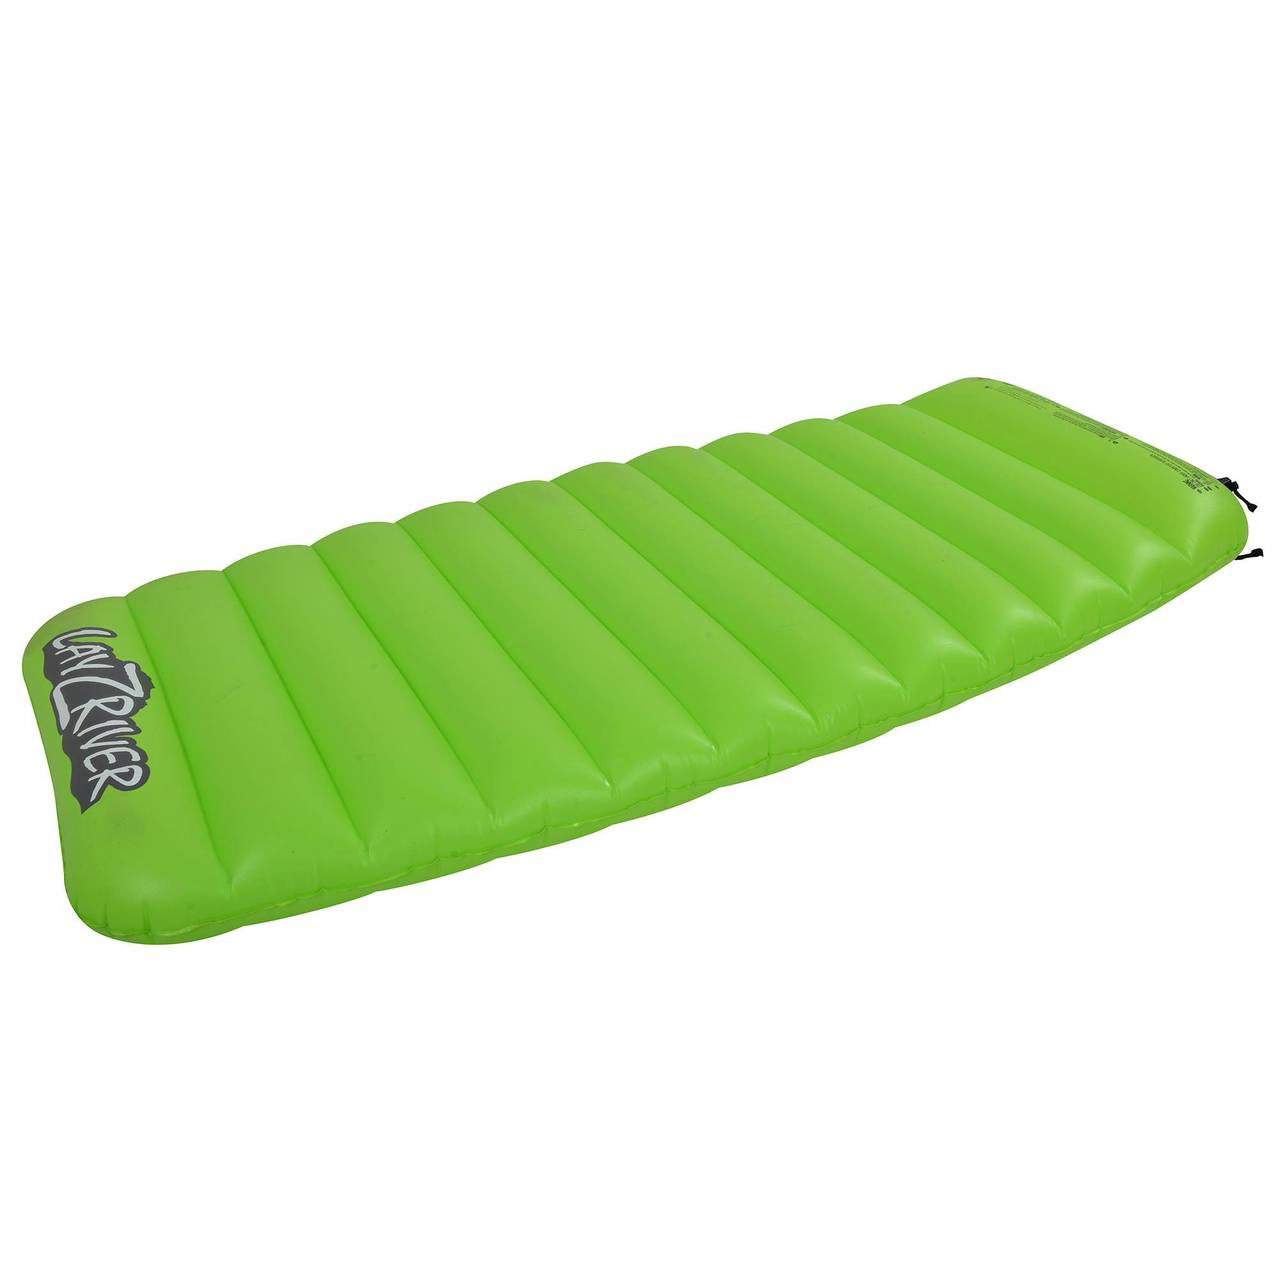 LayZRiver Inflatable 1-Person Swim Float Mattress